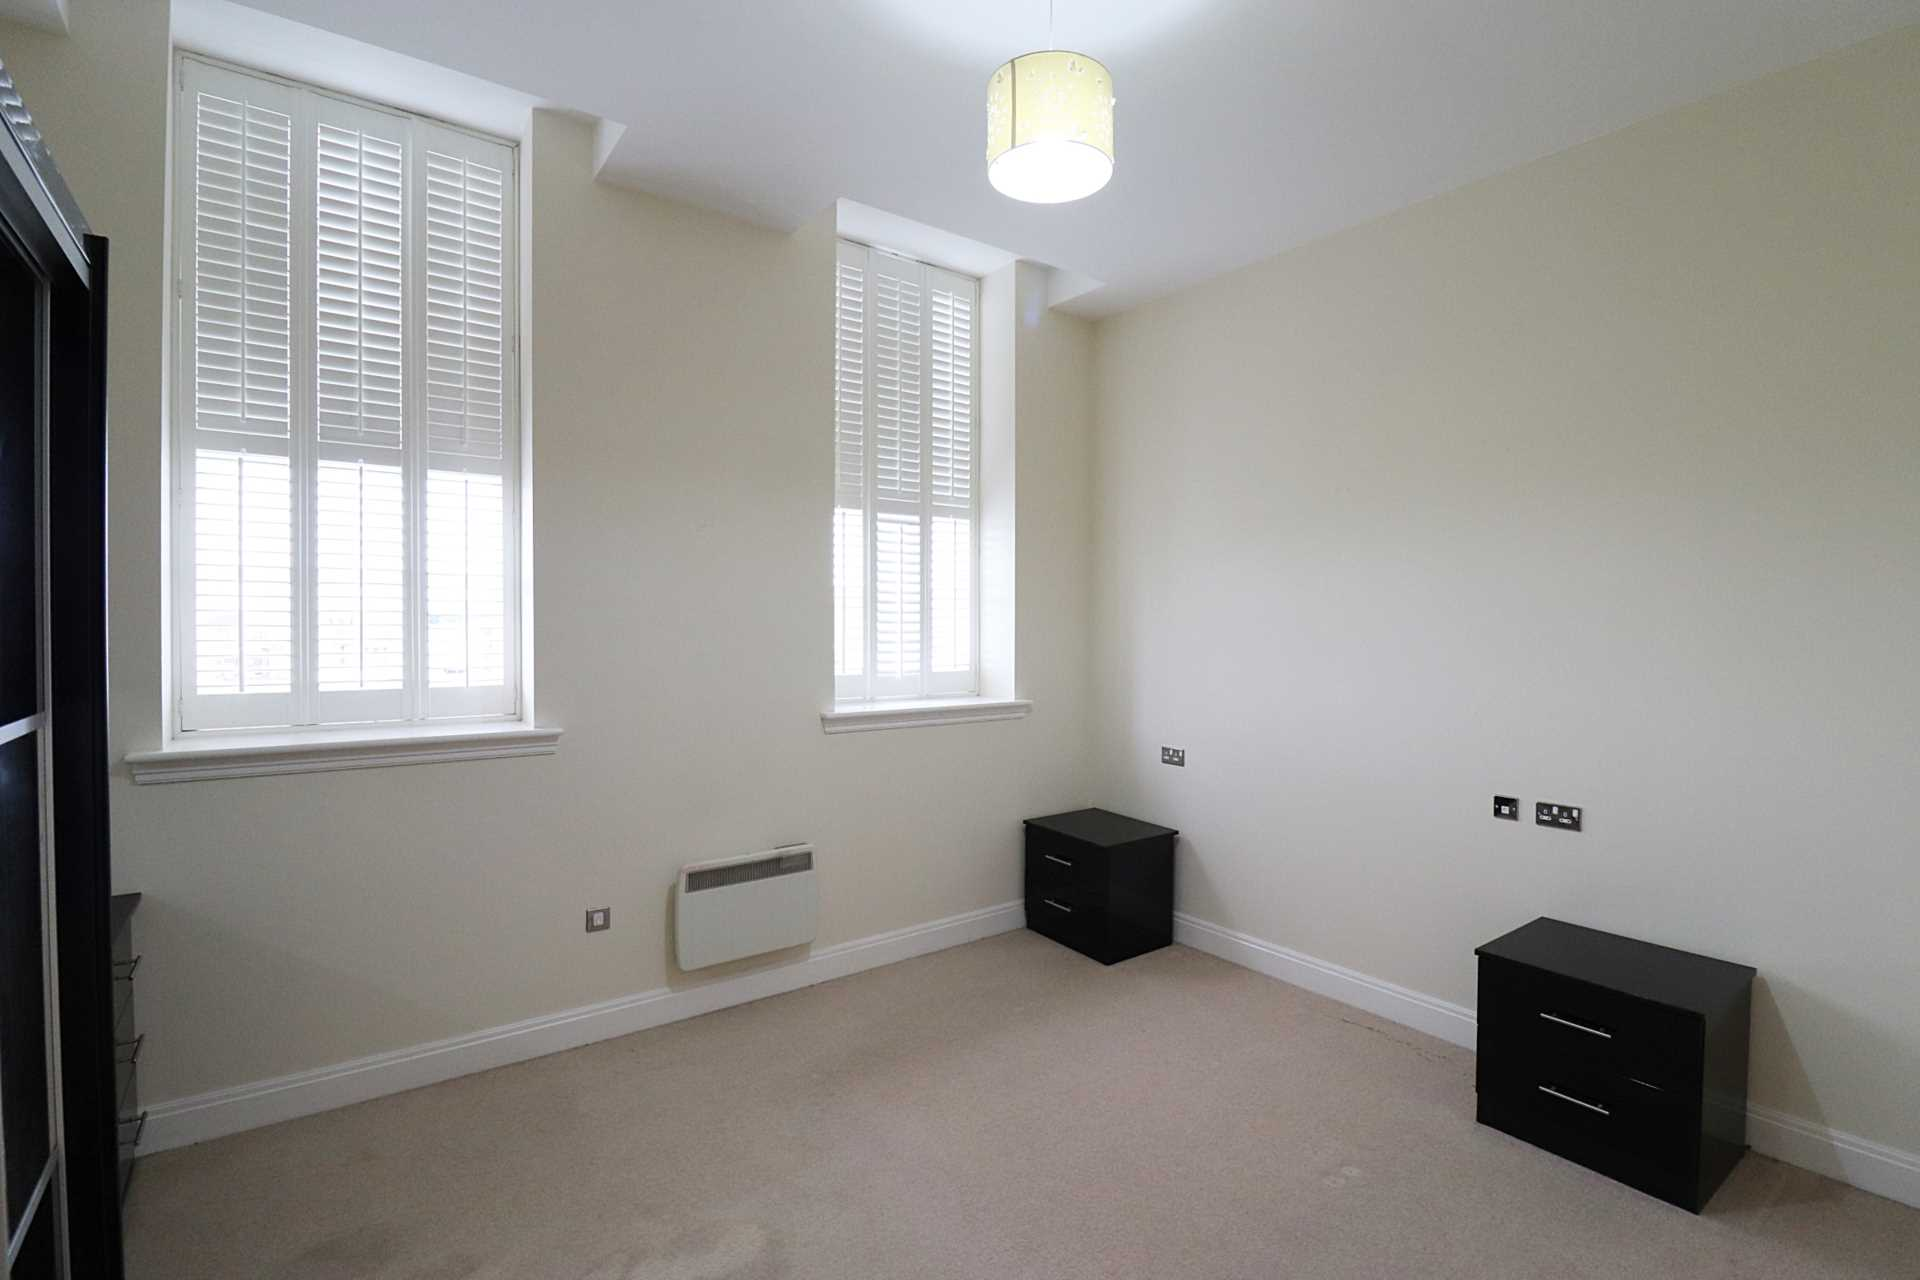 Queens Manor, Clifton Drive South, Lytham St Annes, Image 5